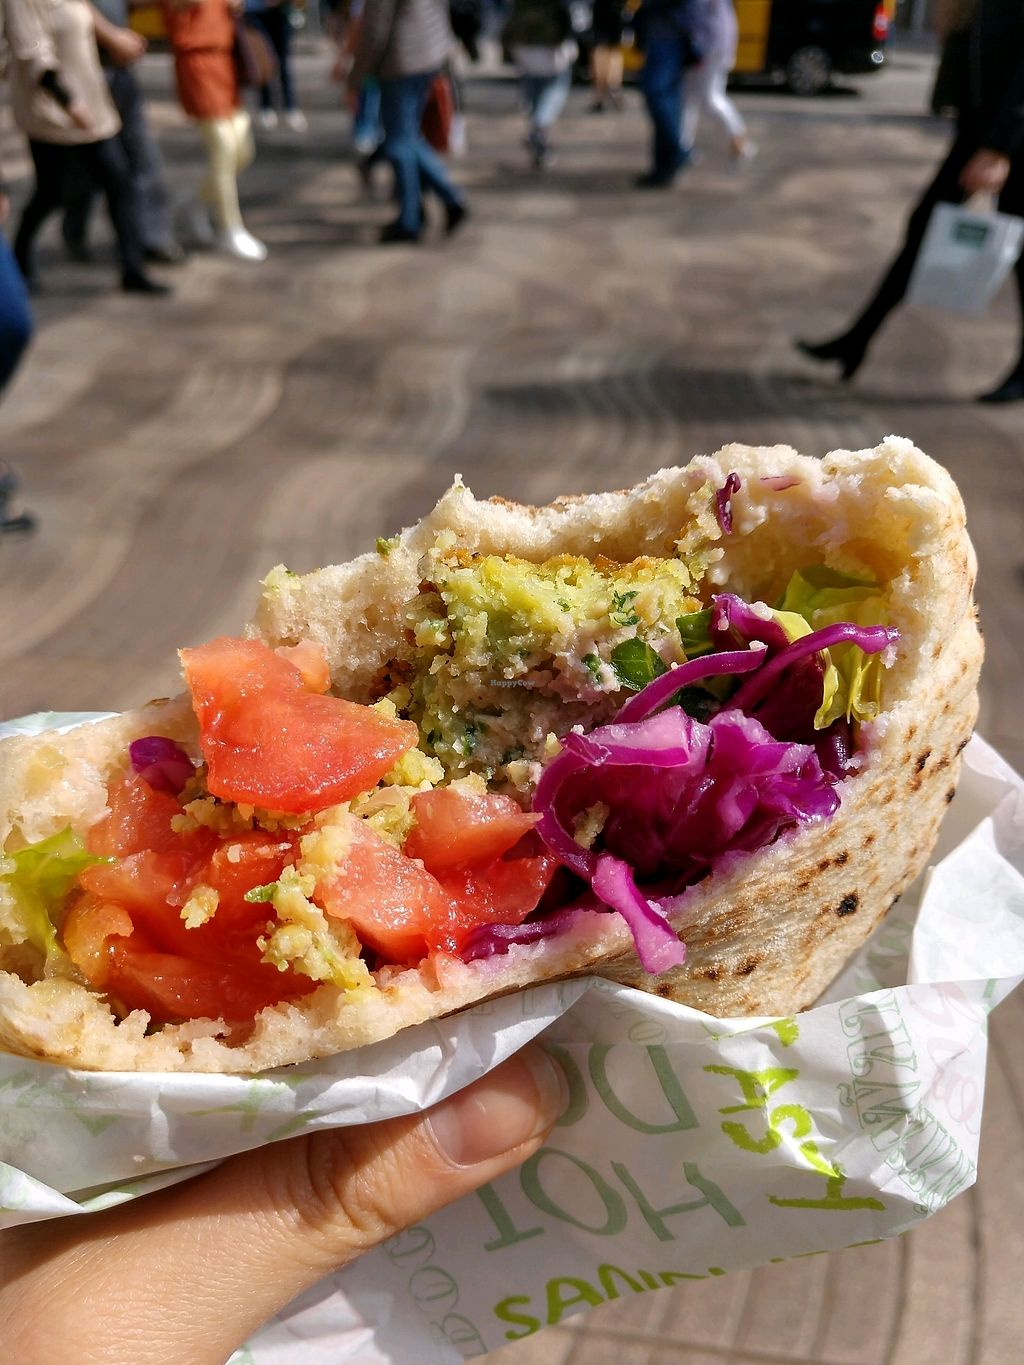 "Photo of Falafel Boqueria - Food Stall  by <a href=""/members/profile/DebbieLee"">DebbieLee</a> <br/>falafel with nearly all the topping choices! sooo goooood <br/> April 5, 2018  - <a href='/contact/abuse/image/61967/381165'>Report</a>"